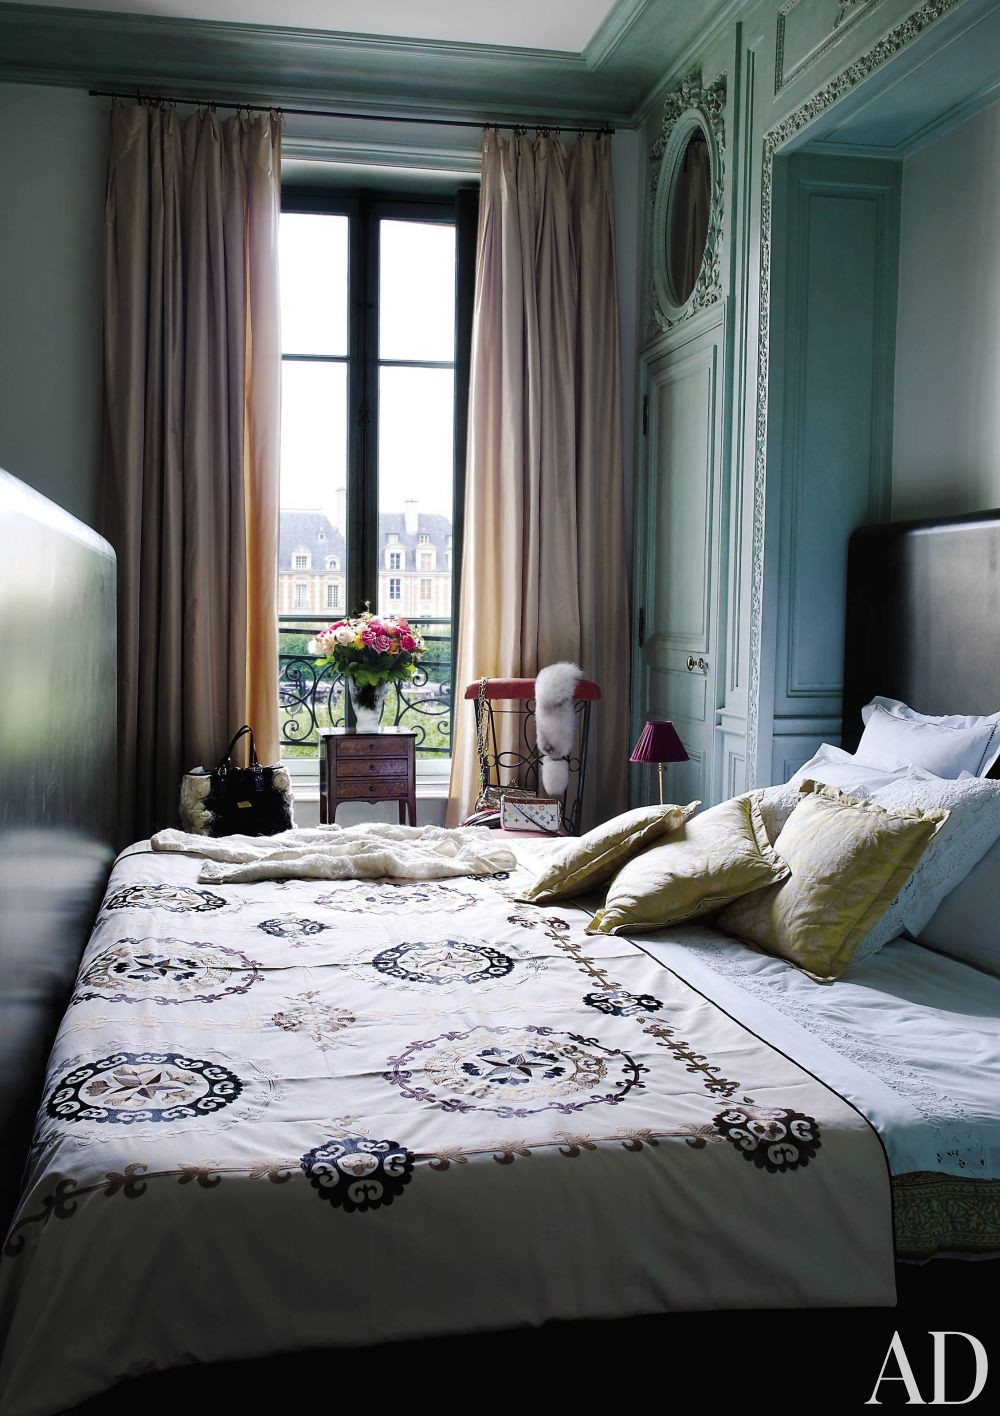 Traditional Bedroom by Jacques Garcia in Paris, France